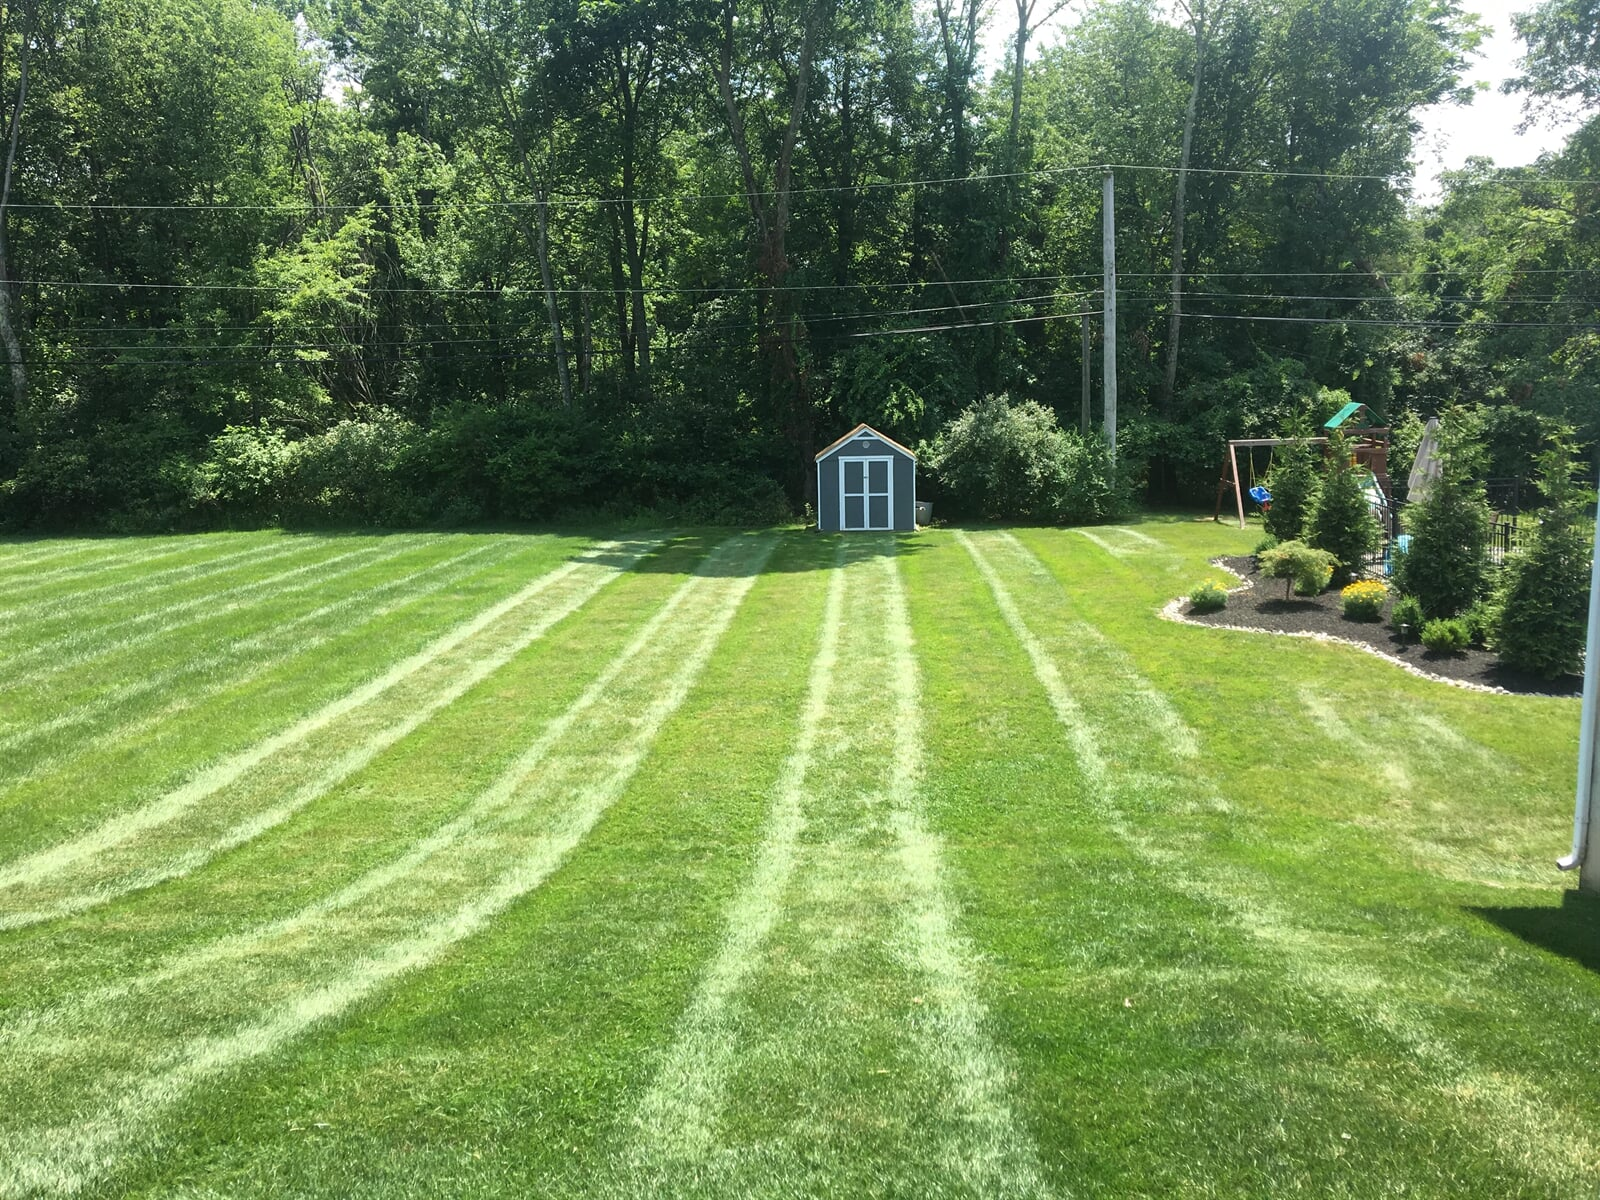 Large field of fresh mowed lawn